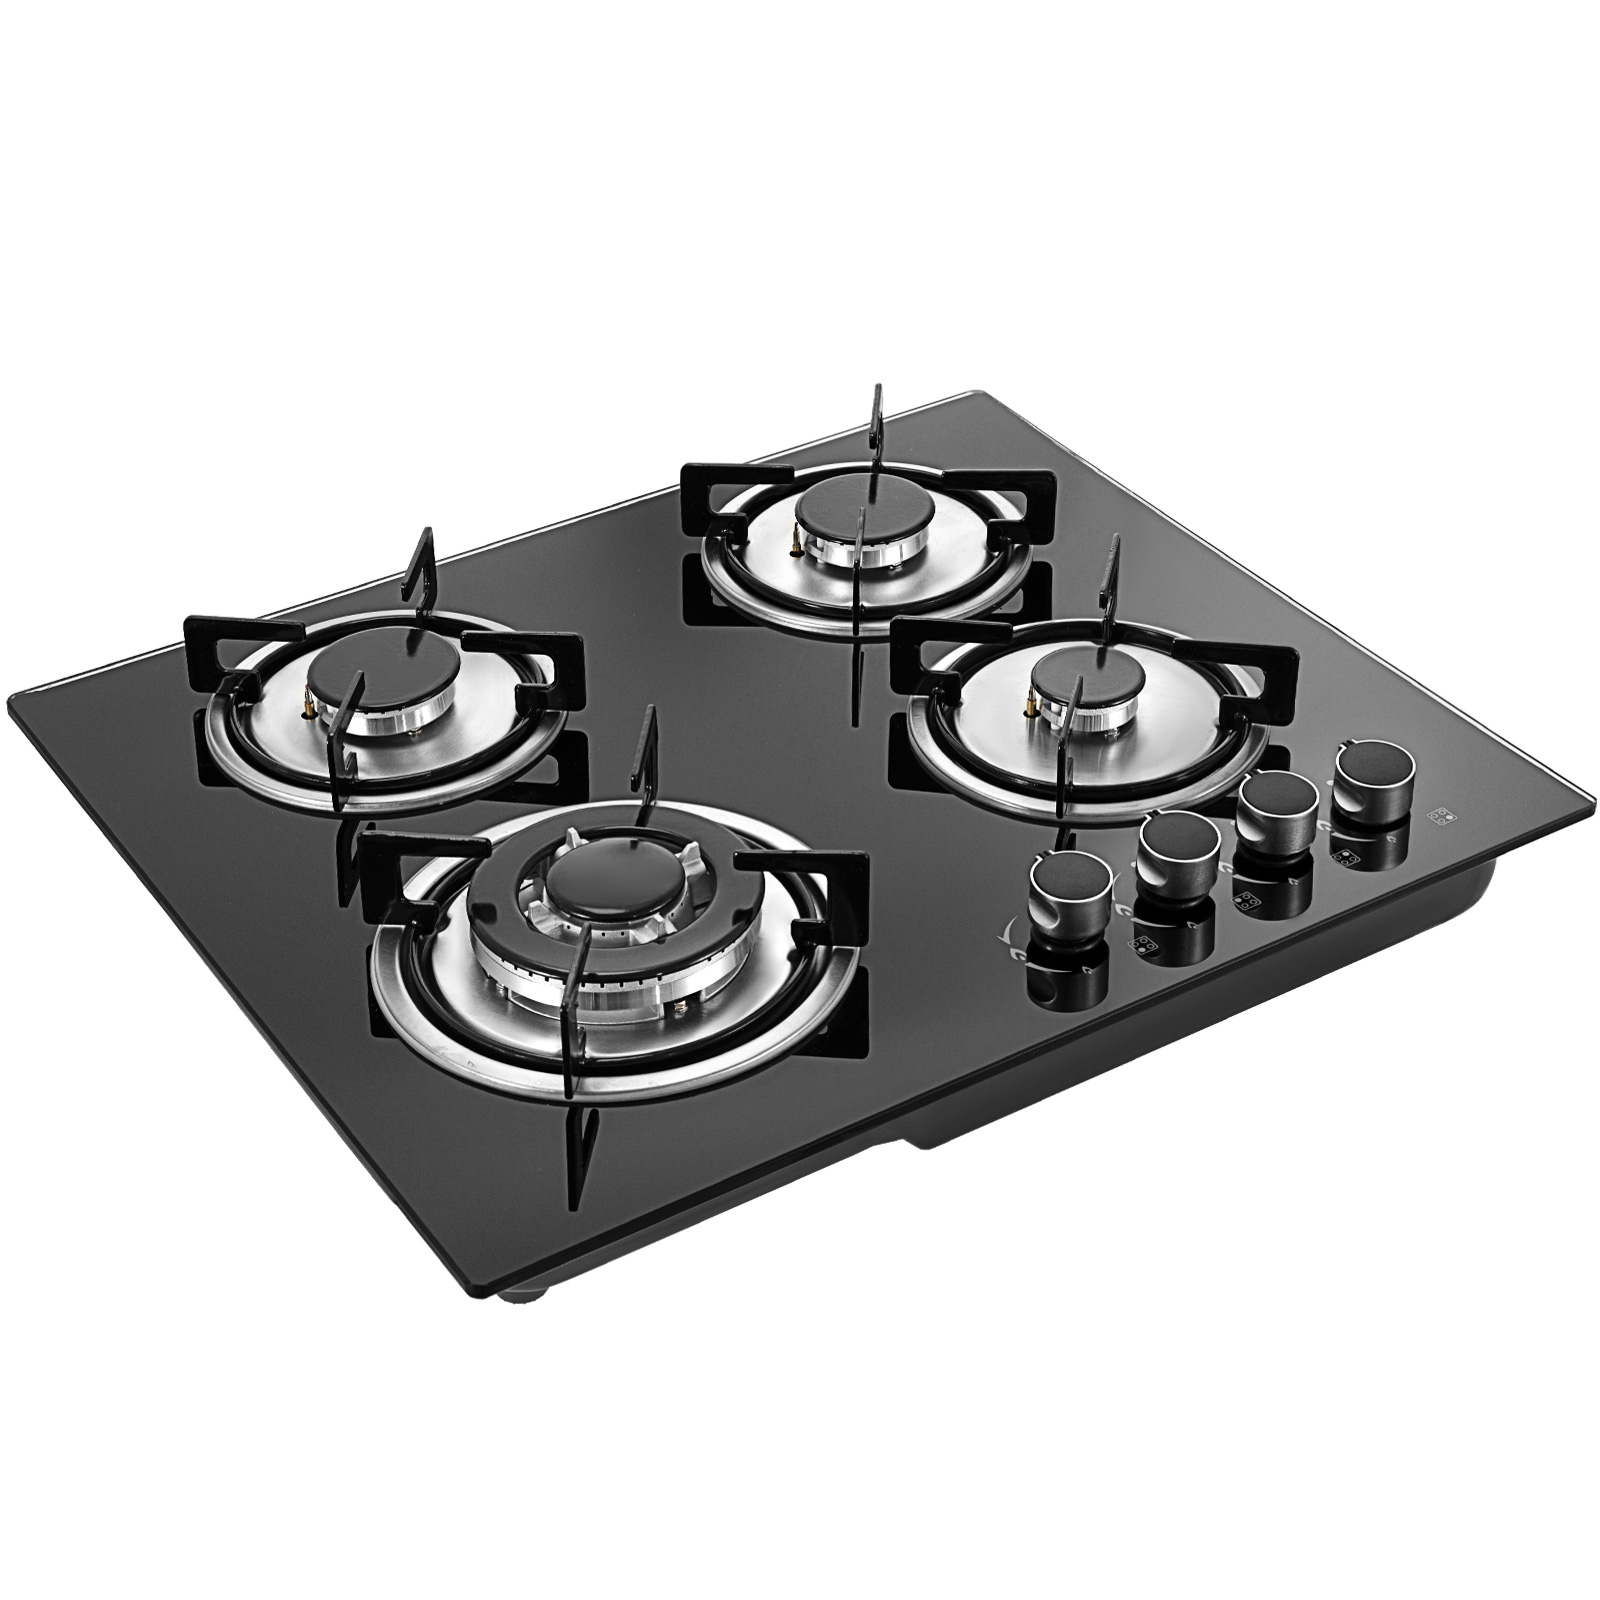 Tempered-Glass-4-Burners-Stove-Gas-Cooktop-iron-grates-LPG-amp-LNG-Gas-St-Steel thumbnail 10